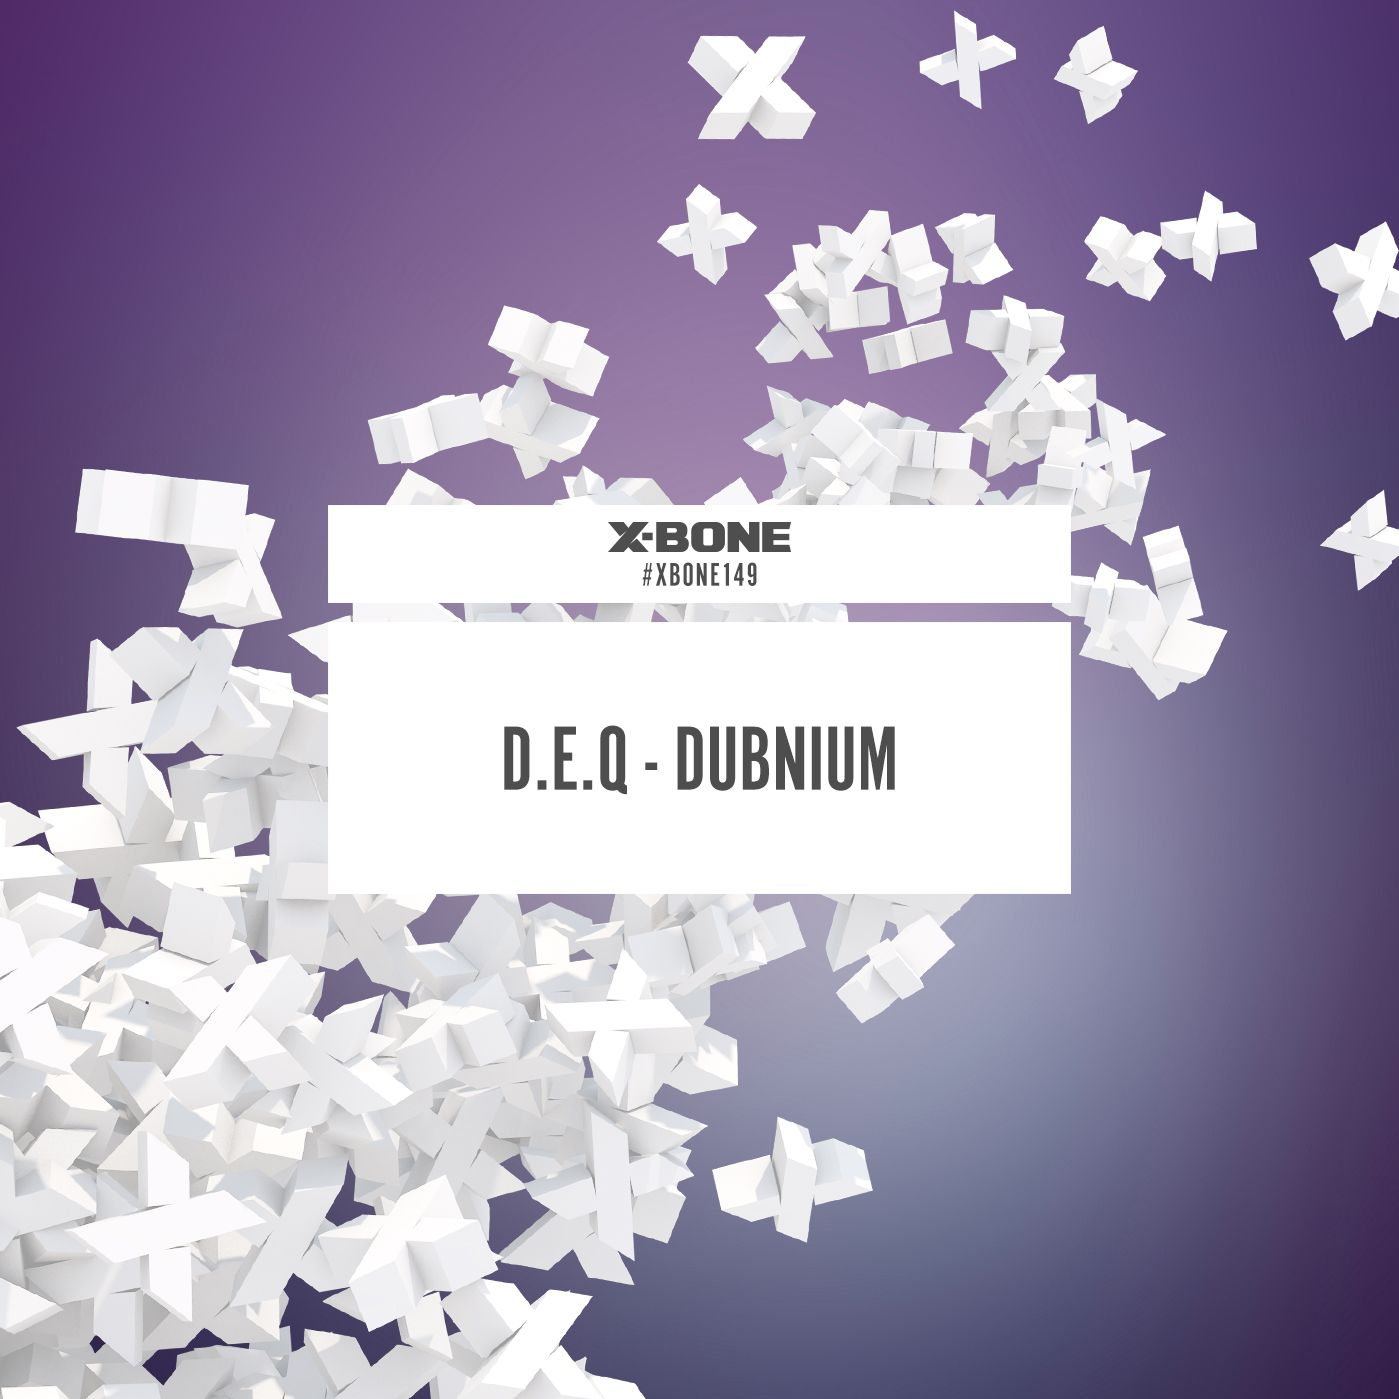 D.E.Q - Dubnium [X-BONE RECORDS] XBONE149